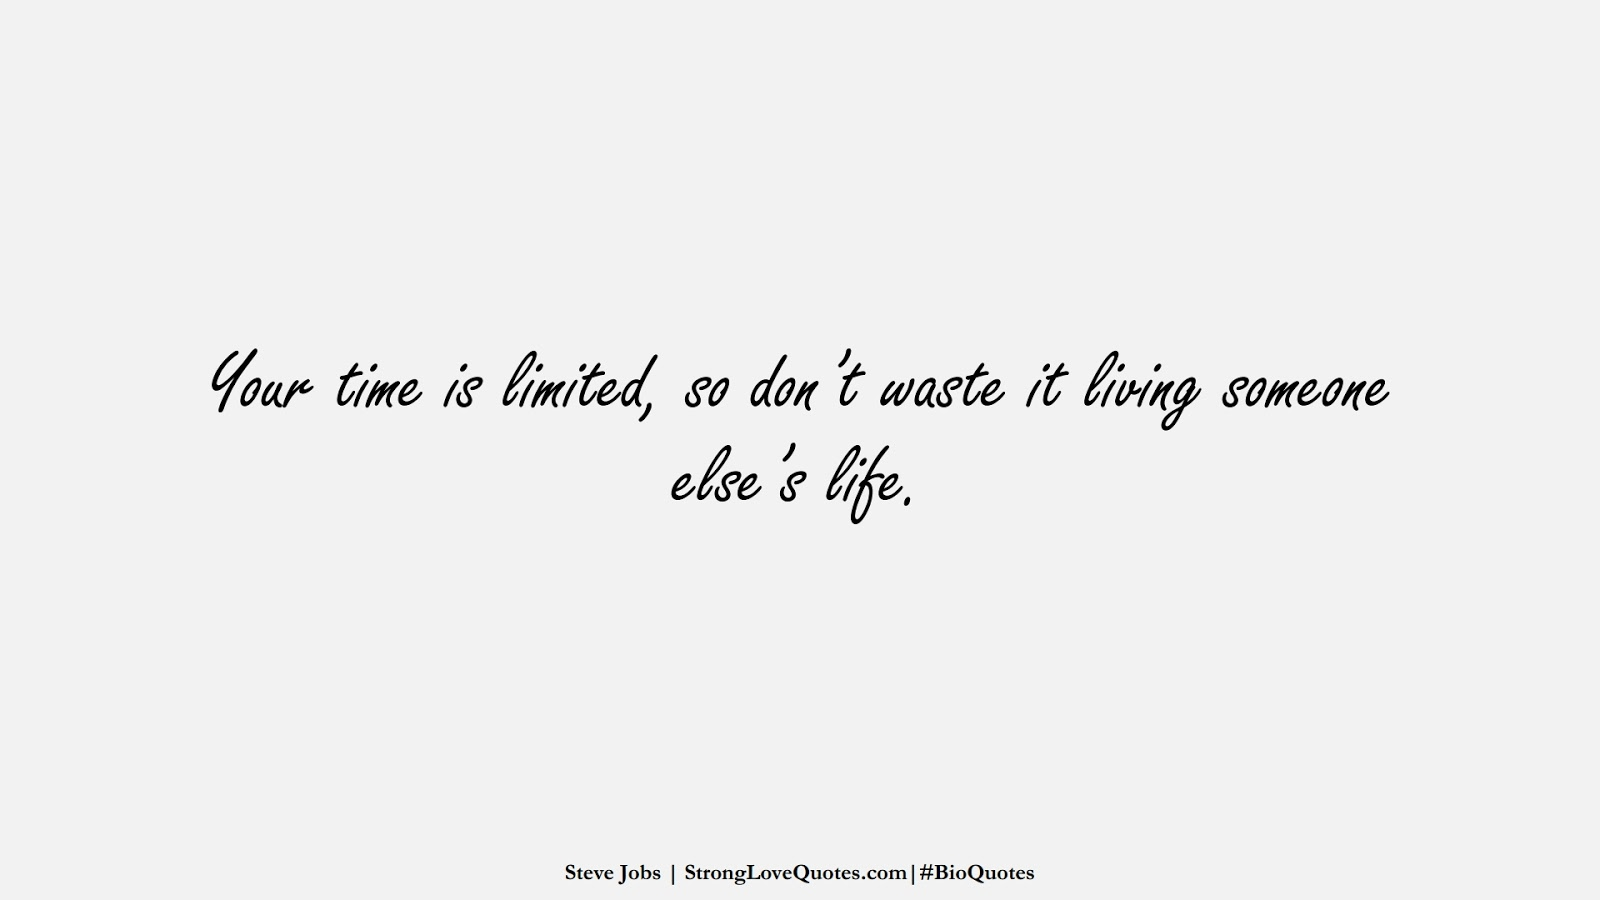 Your time is limited, so don't waste it living someone else's life. (Steve Jobs);  #BioQuotes